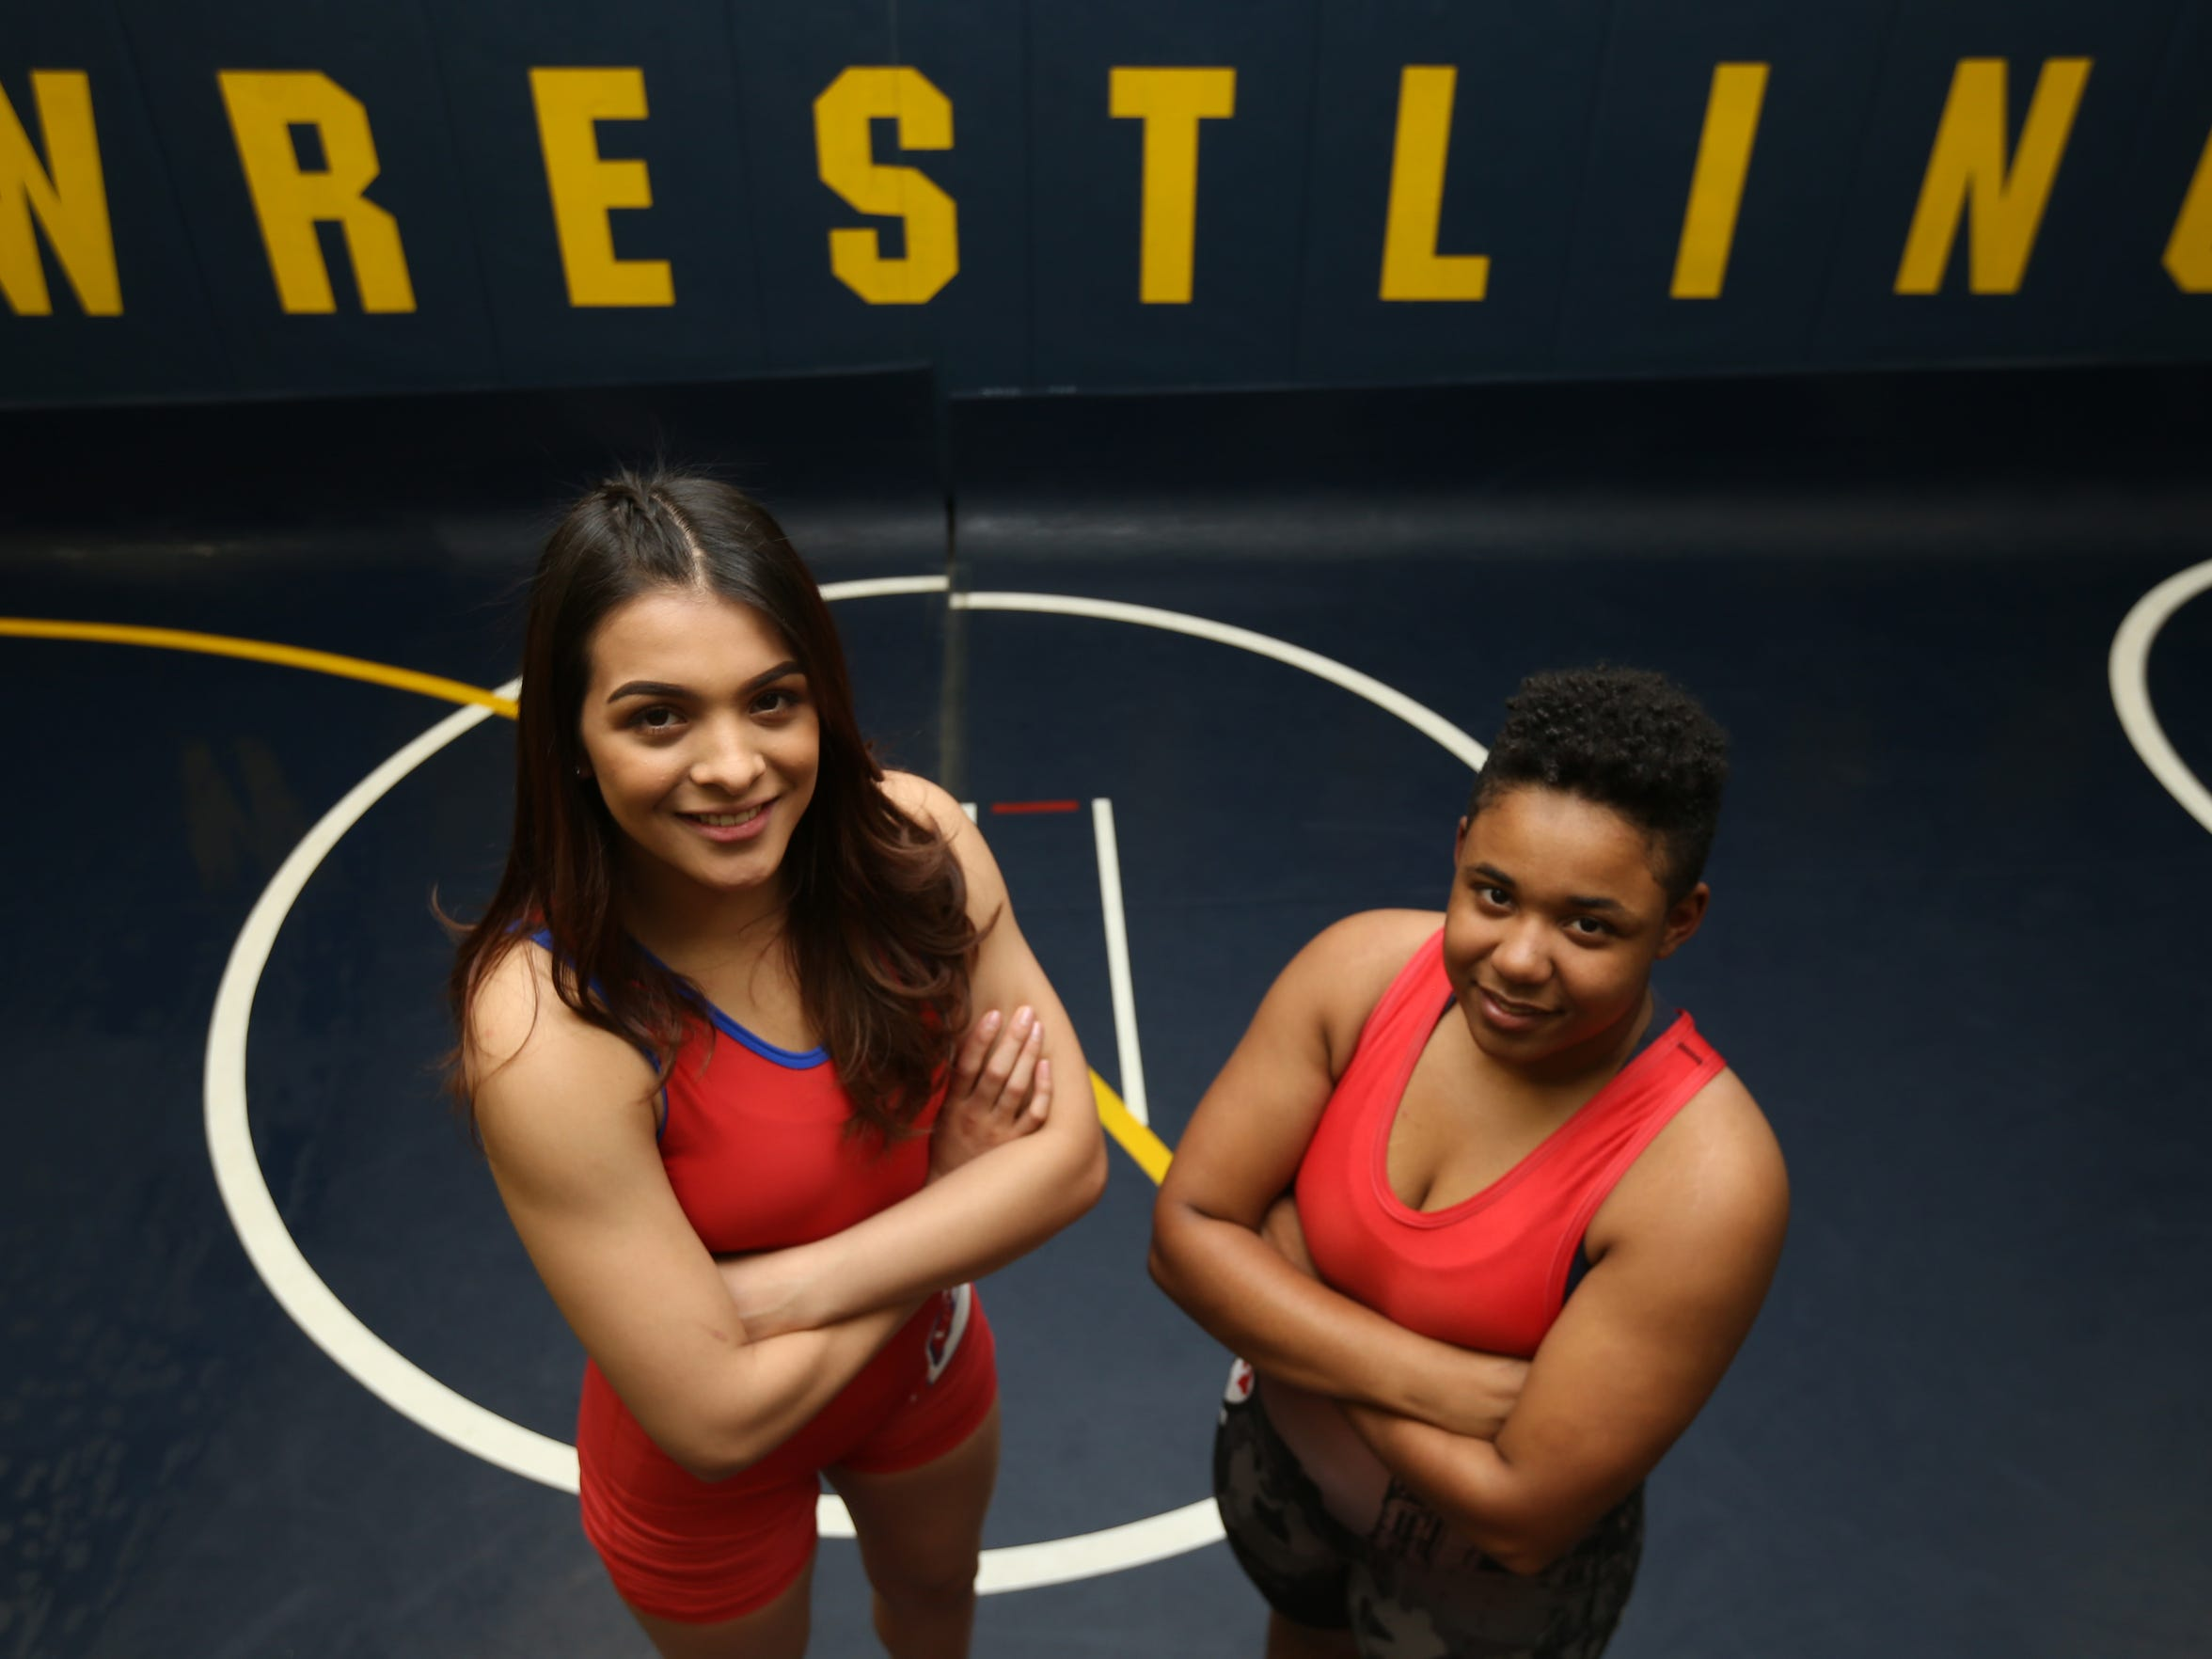 Americas' Adrienne Garcia, left, and Hanks' Gianna Morales won state wrestling titles this year. Garcia won at 128 pounds and Morales at 165.